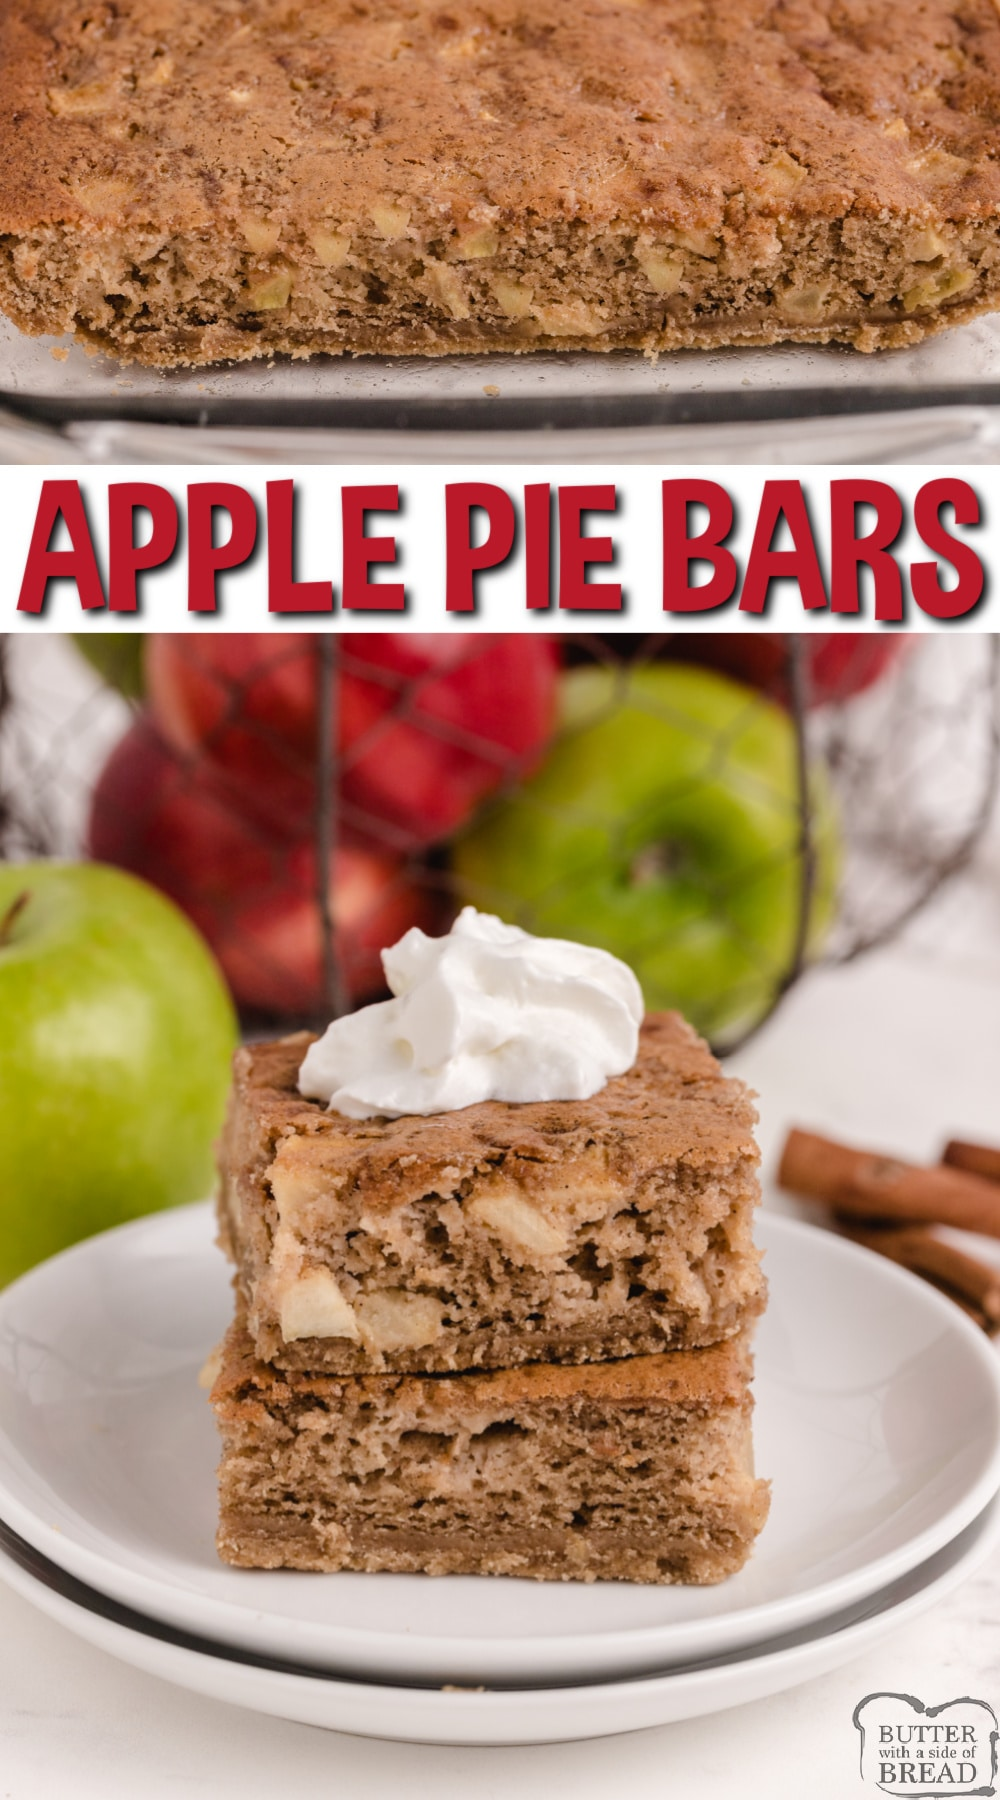 Sour Cream Apple Pie Bars are almost like a pie, almost like a cookie, but absolutely delicious! Made with fresh apples, sour cream and a few other basic ingredients, this just might be your new favorite apple dessert!